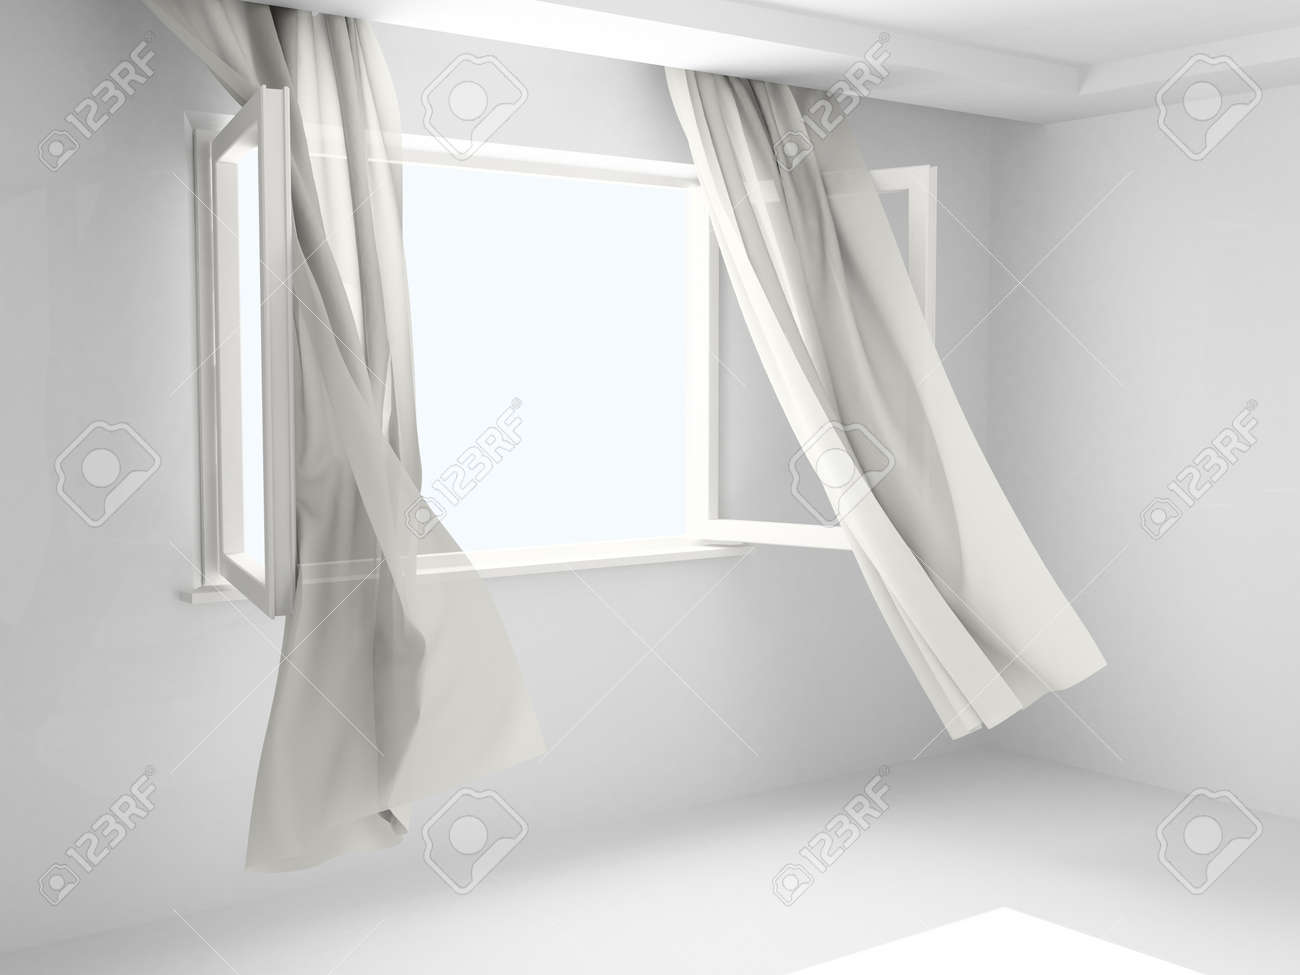 Open window with curtains blowing - 54 Inch Length Curtains Target